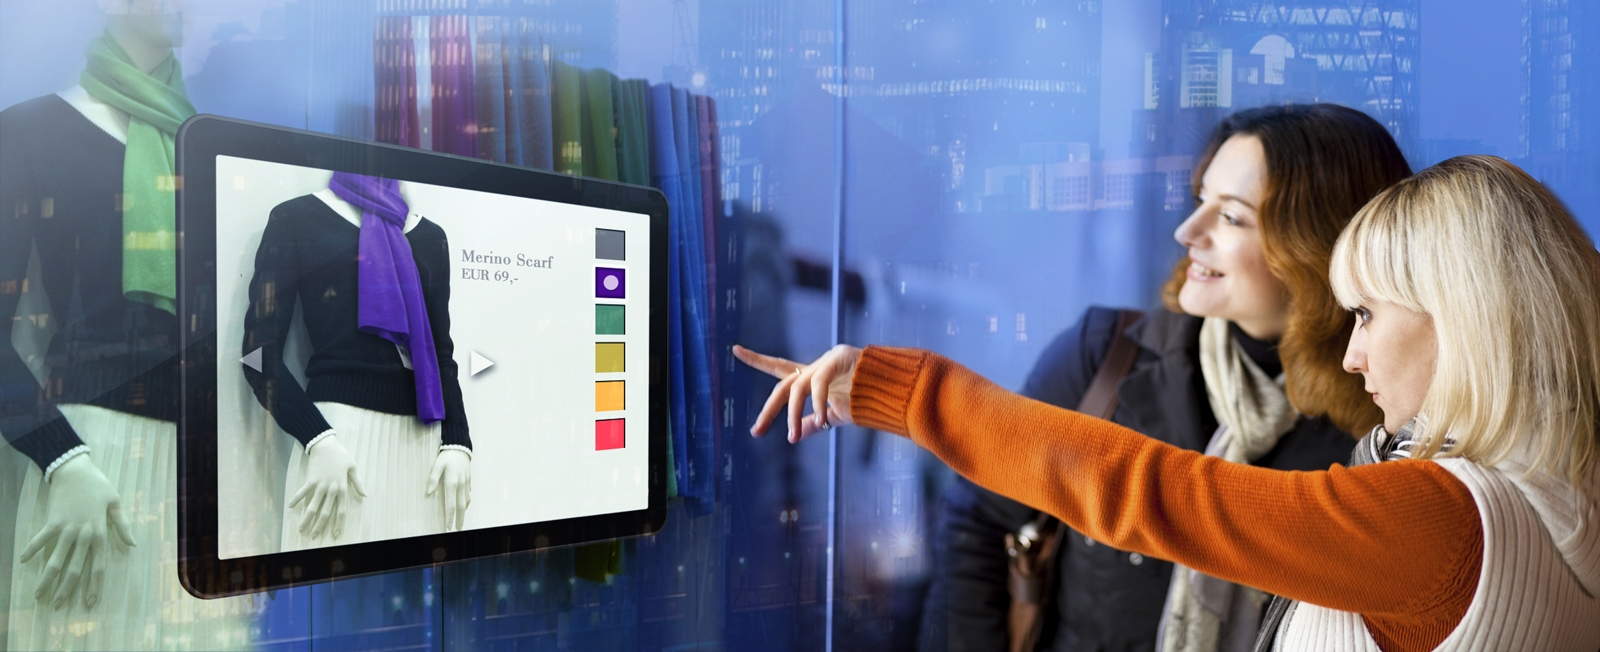 Interactive-window-responds-to-shoppers-